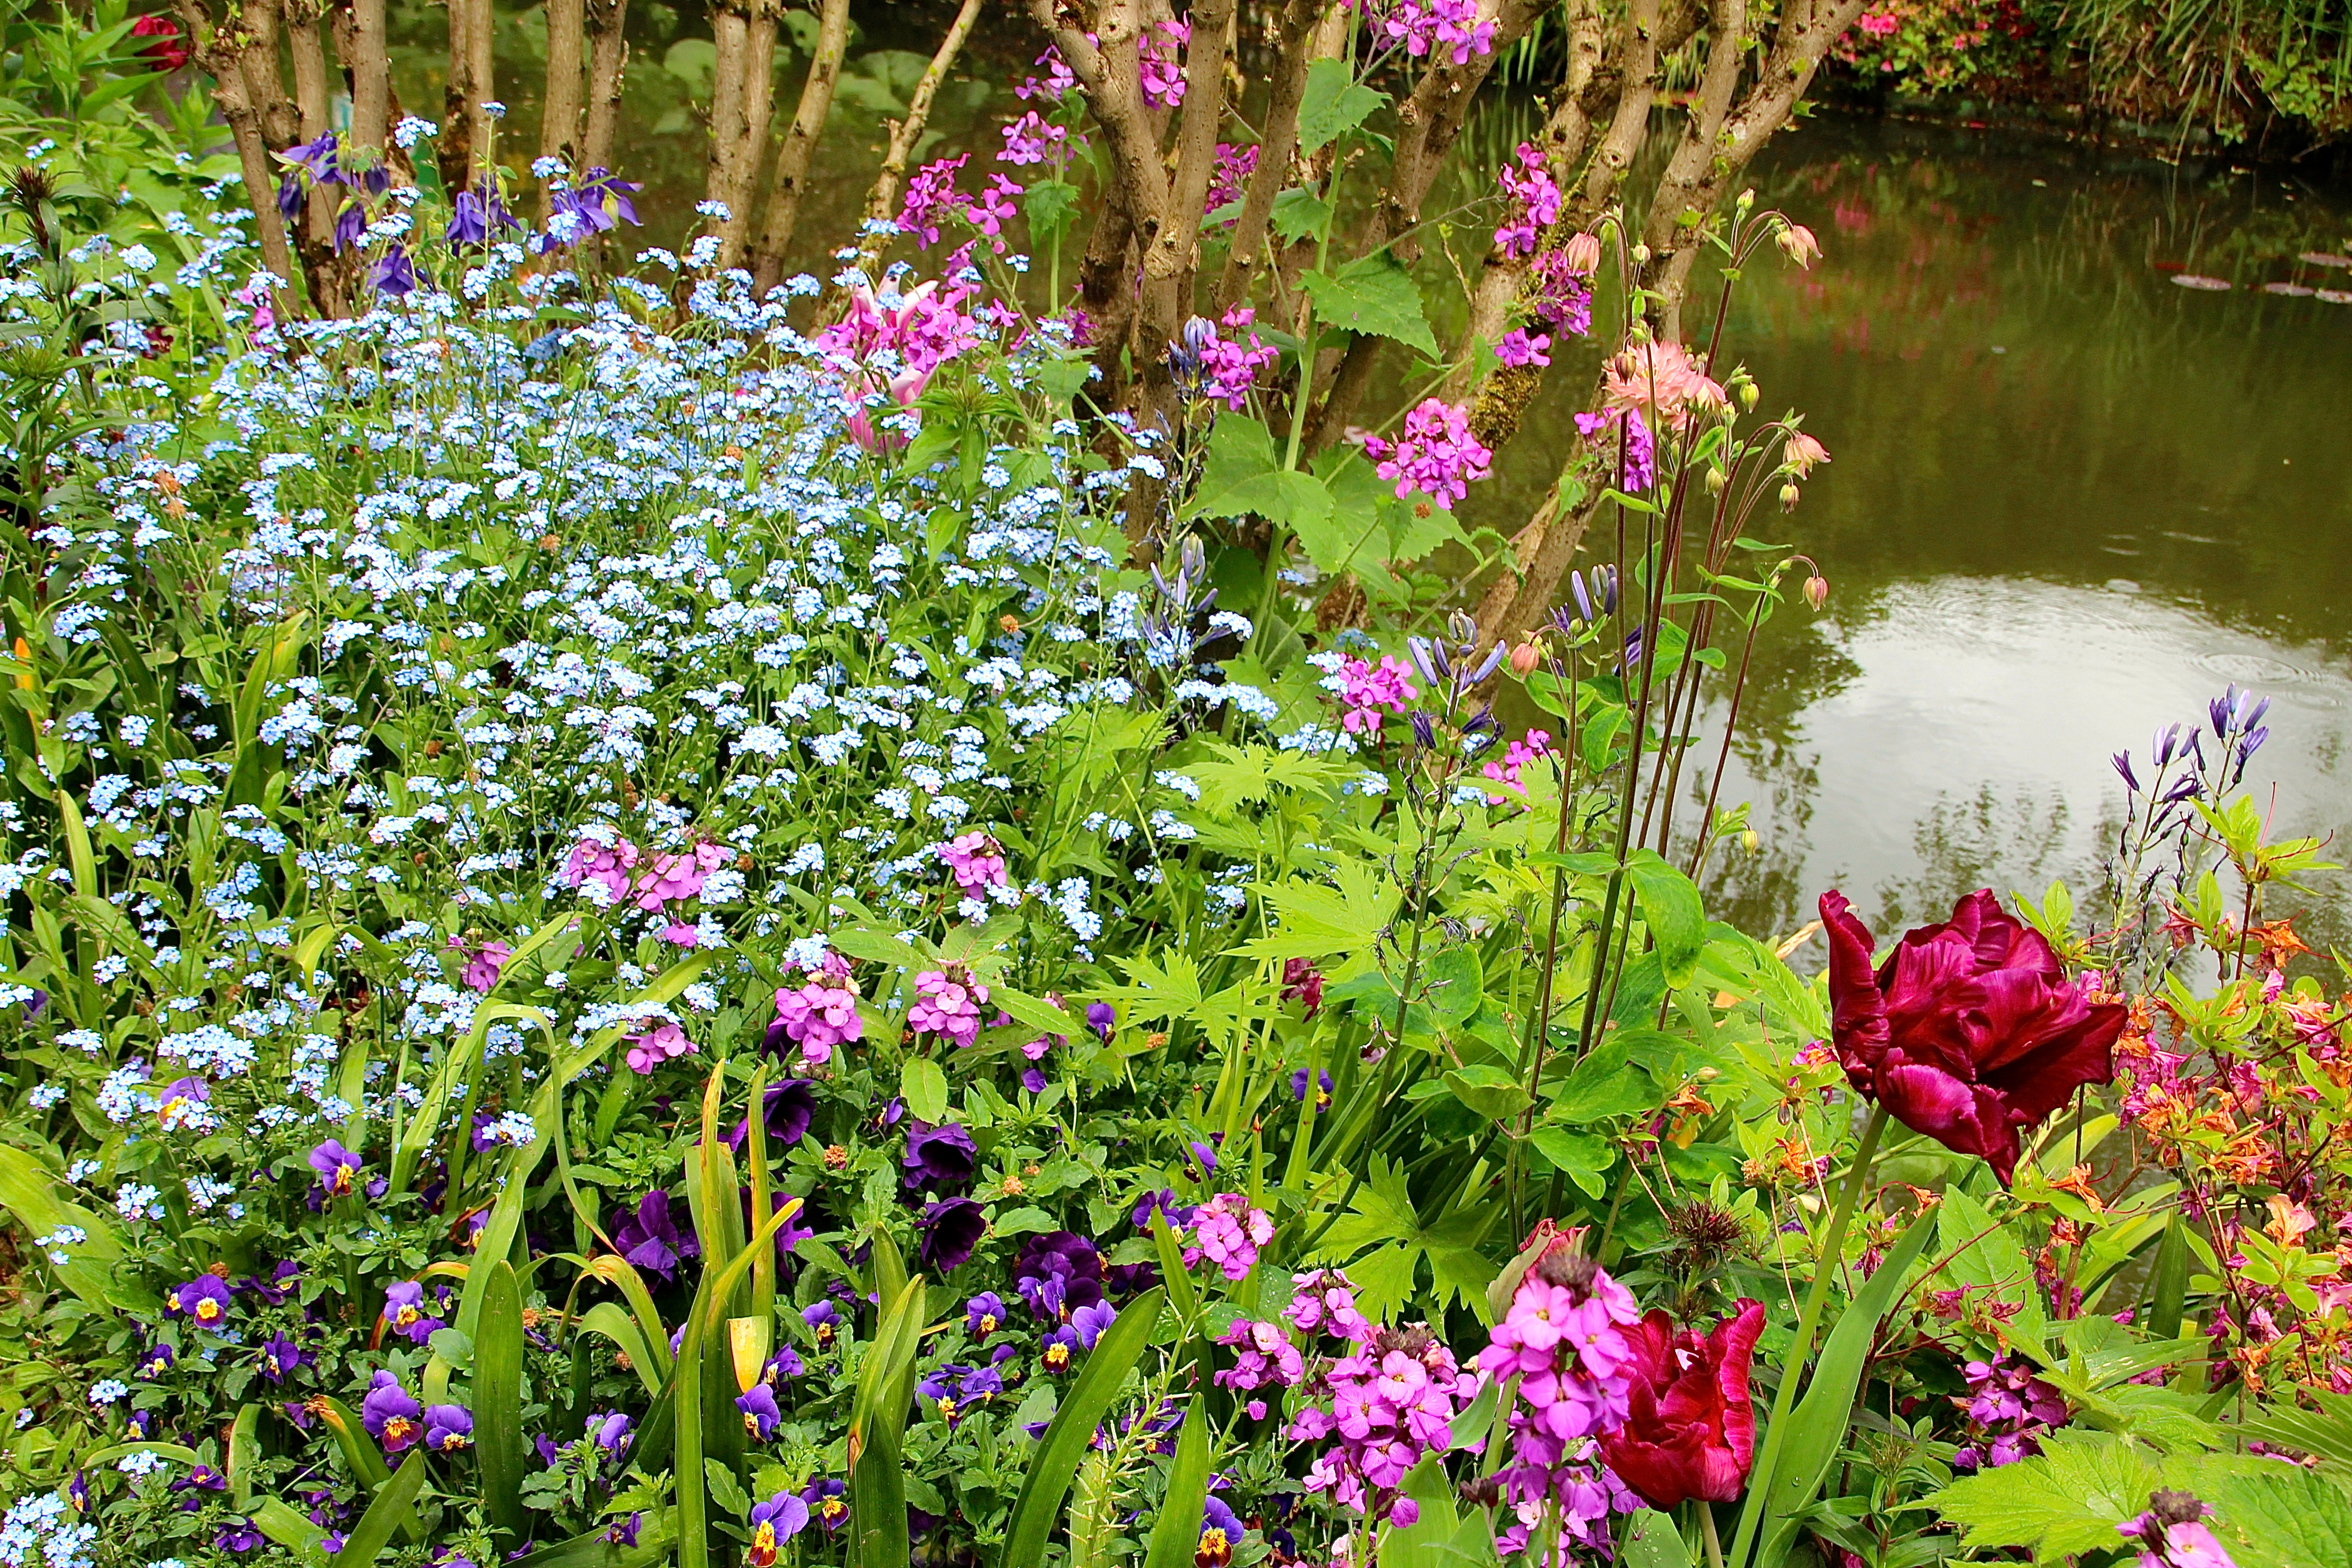 Spring flowers blooming at Giverny. France. 05.09.16. 30